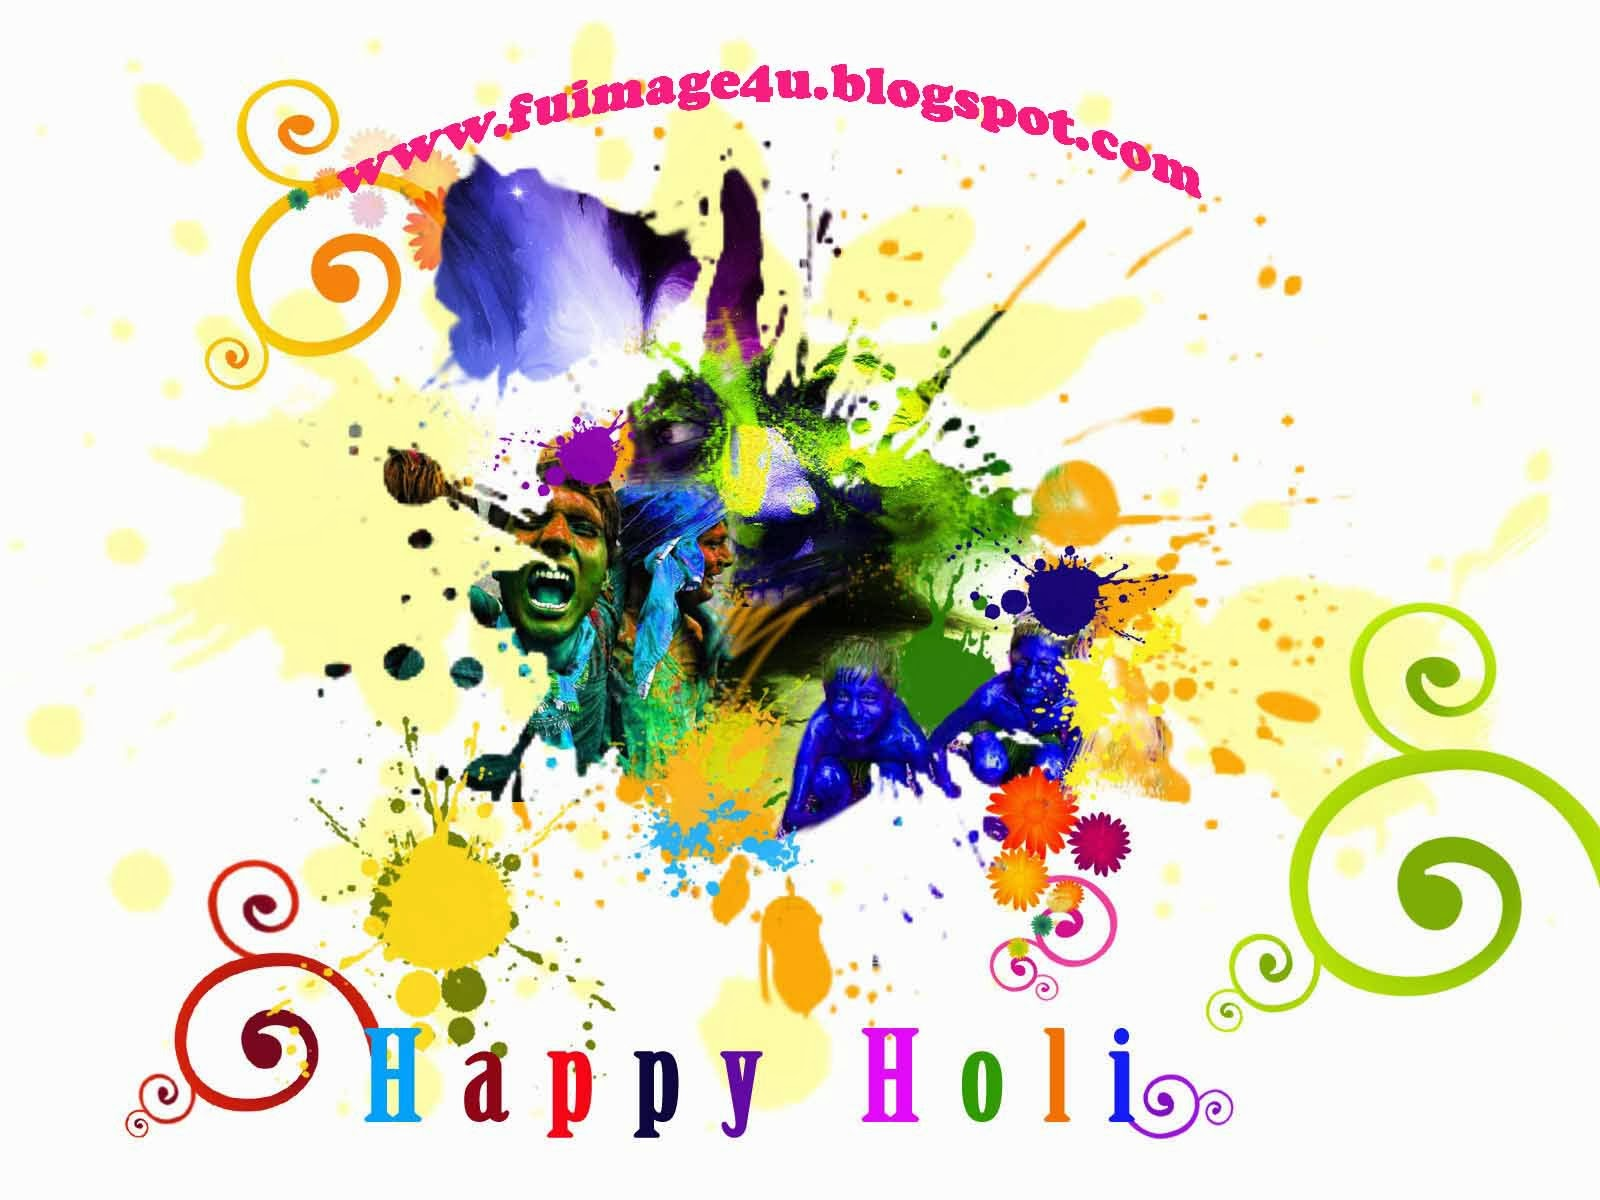 Happy Holi Greeting Cards Poems Messages CommentsHappy Facebook Wall PostHappy Flash Scraps Fb